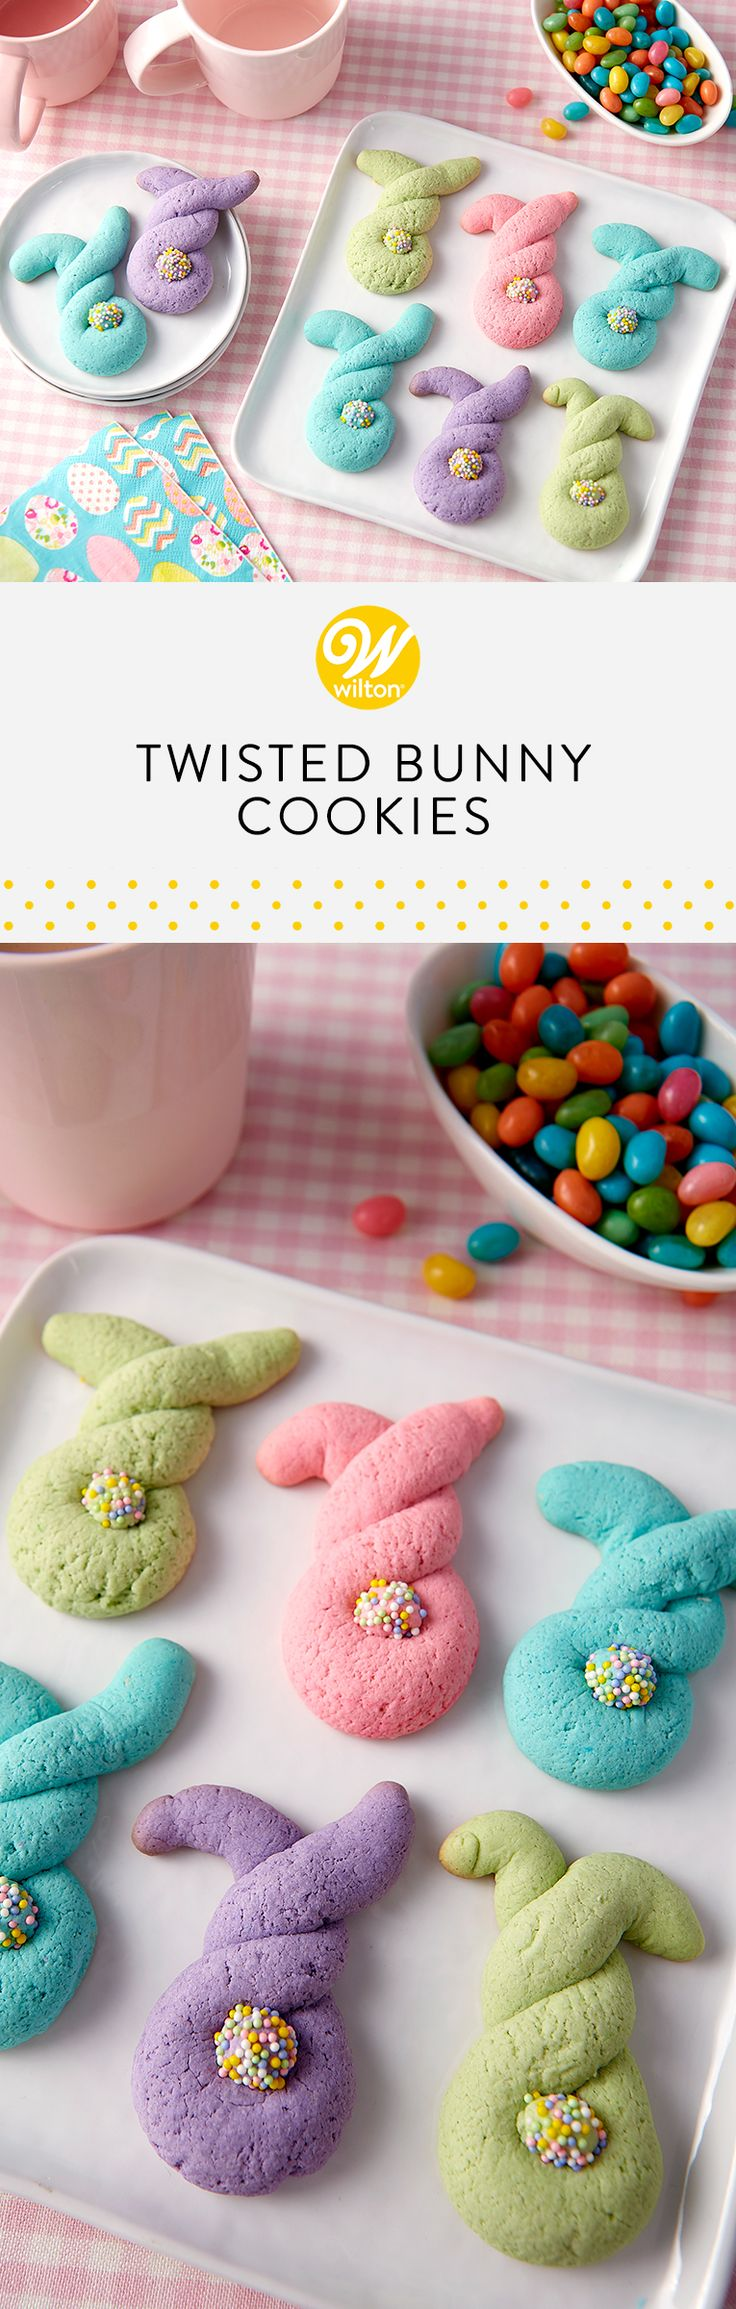 Have fun shaping and baking these twisted bunny cookies. The spring colors and free-form shapes look great tucked in Easter baskets and displayed on the Easter dessert table #wiltoncakes #cookies #cookieideas #easter #easterbunny #bunny #eastercookies #easterideas #easterdesserts #bunnycookies